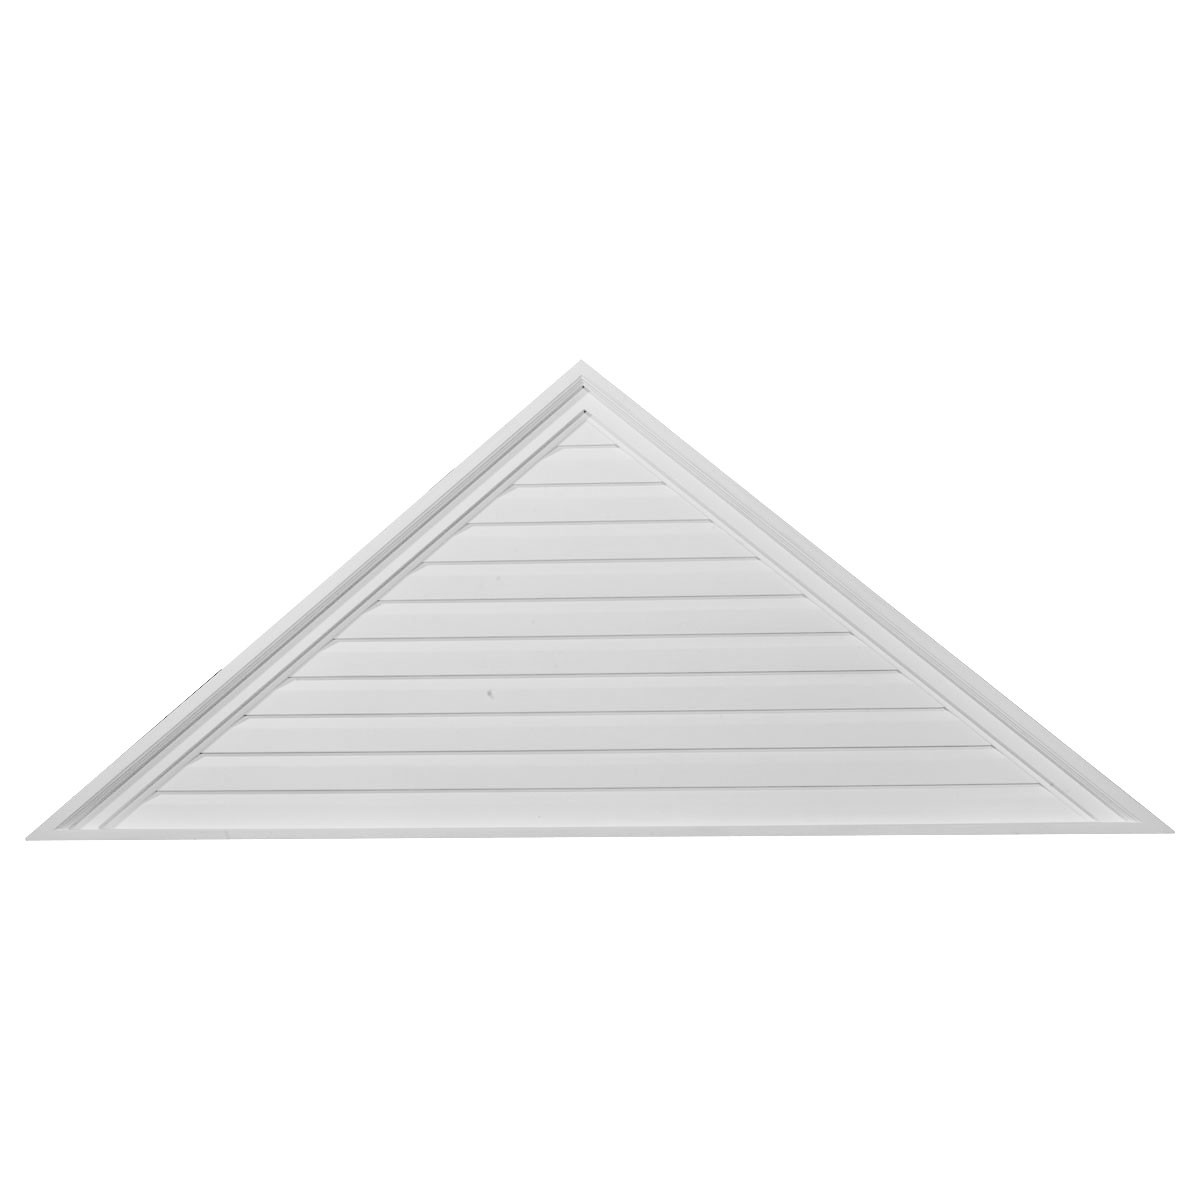 """EM-GVTR72X21F - 72""""W x 21""""H x 2 1/4""""P,  Pitch 7/12 Triangle Gable Vent, Functional"""